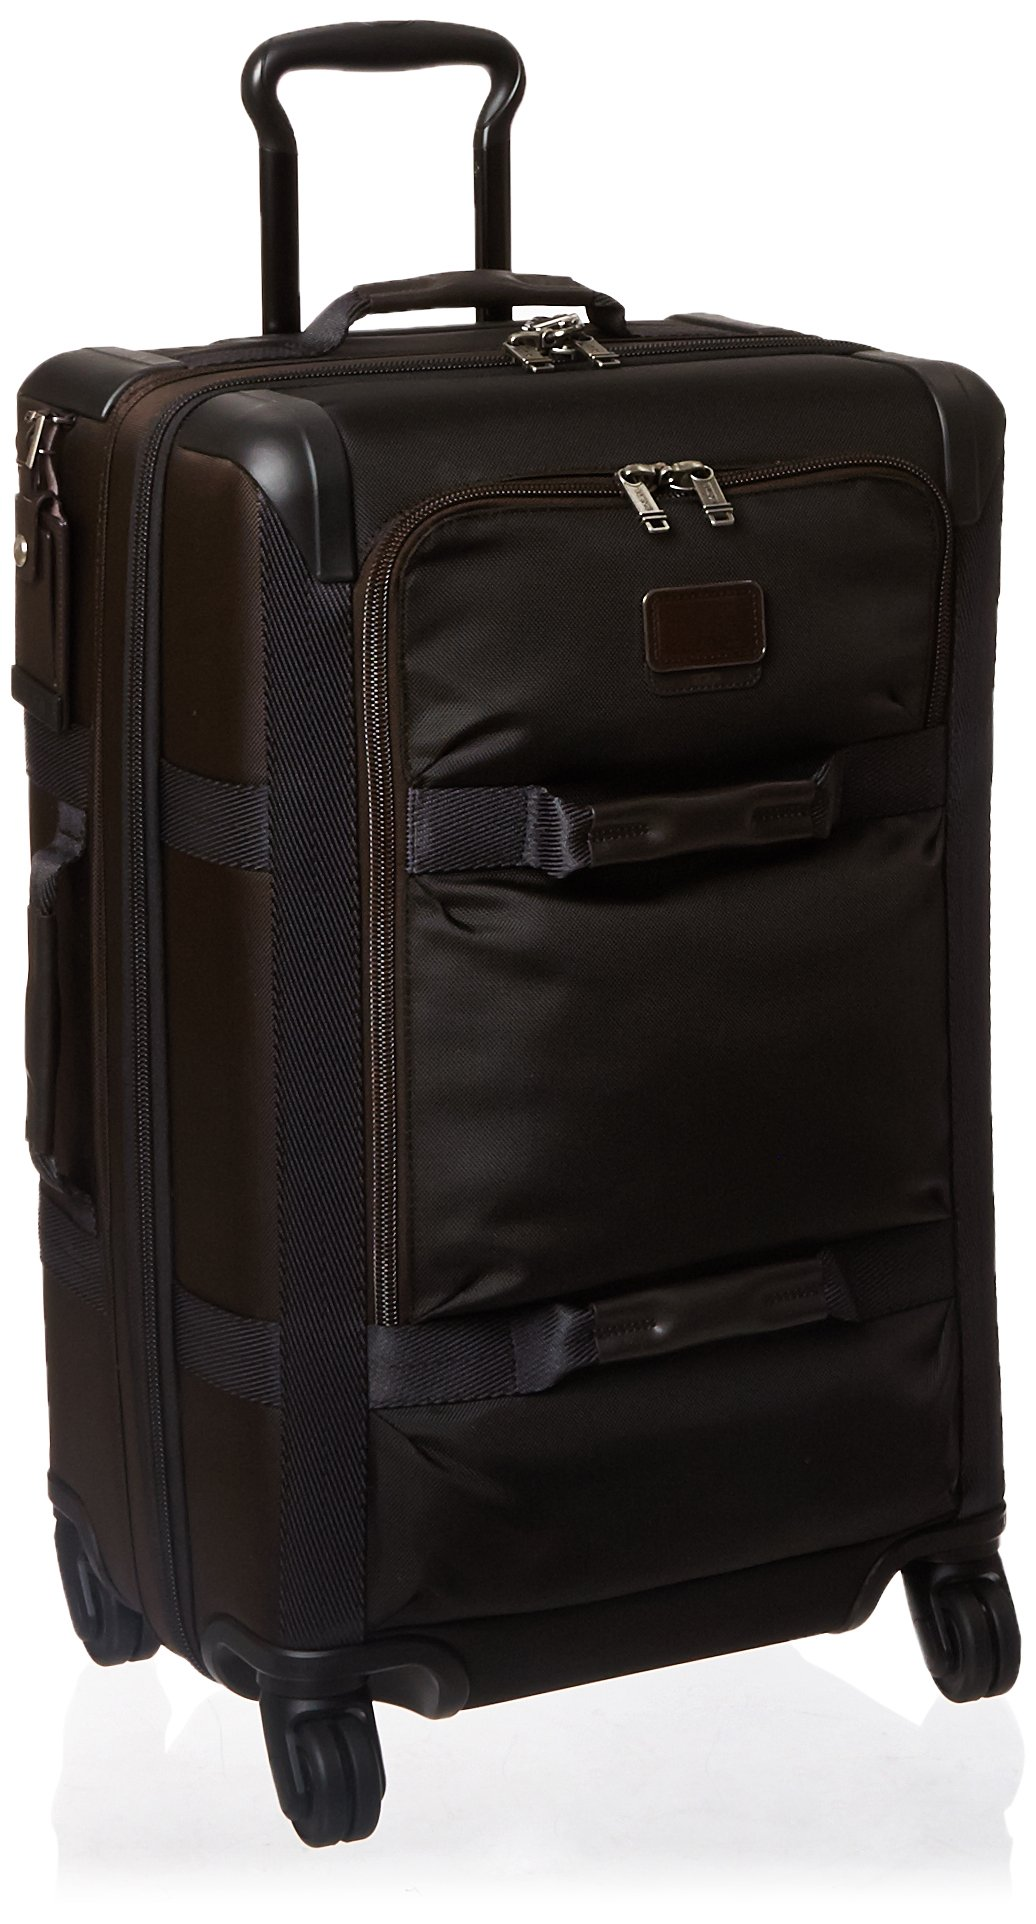 Tumi Alpha Bravo Henderson Short Trip Exp Packing Case, Hickory, One Size by Tumi